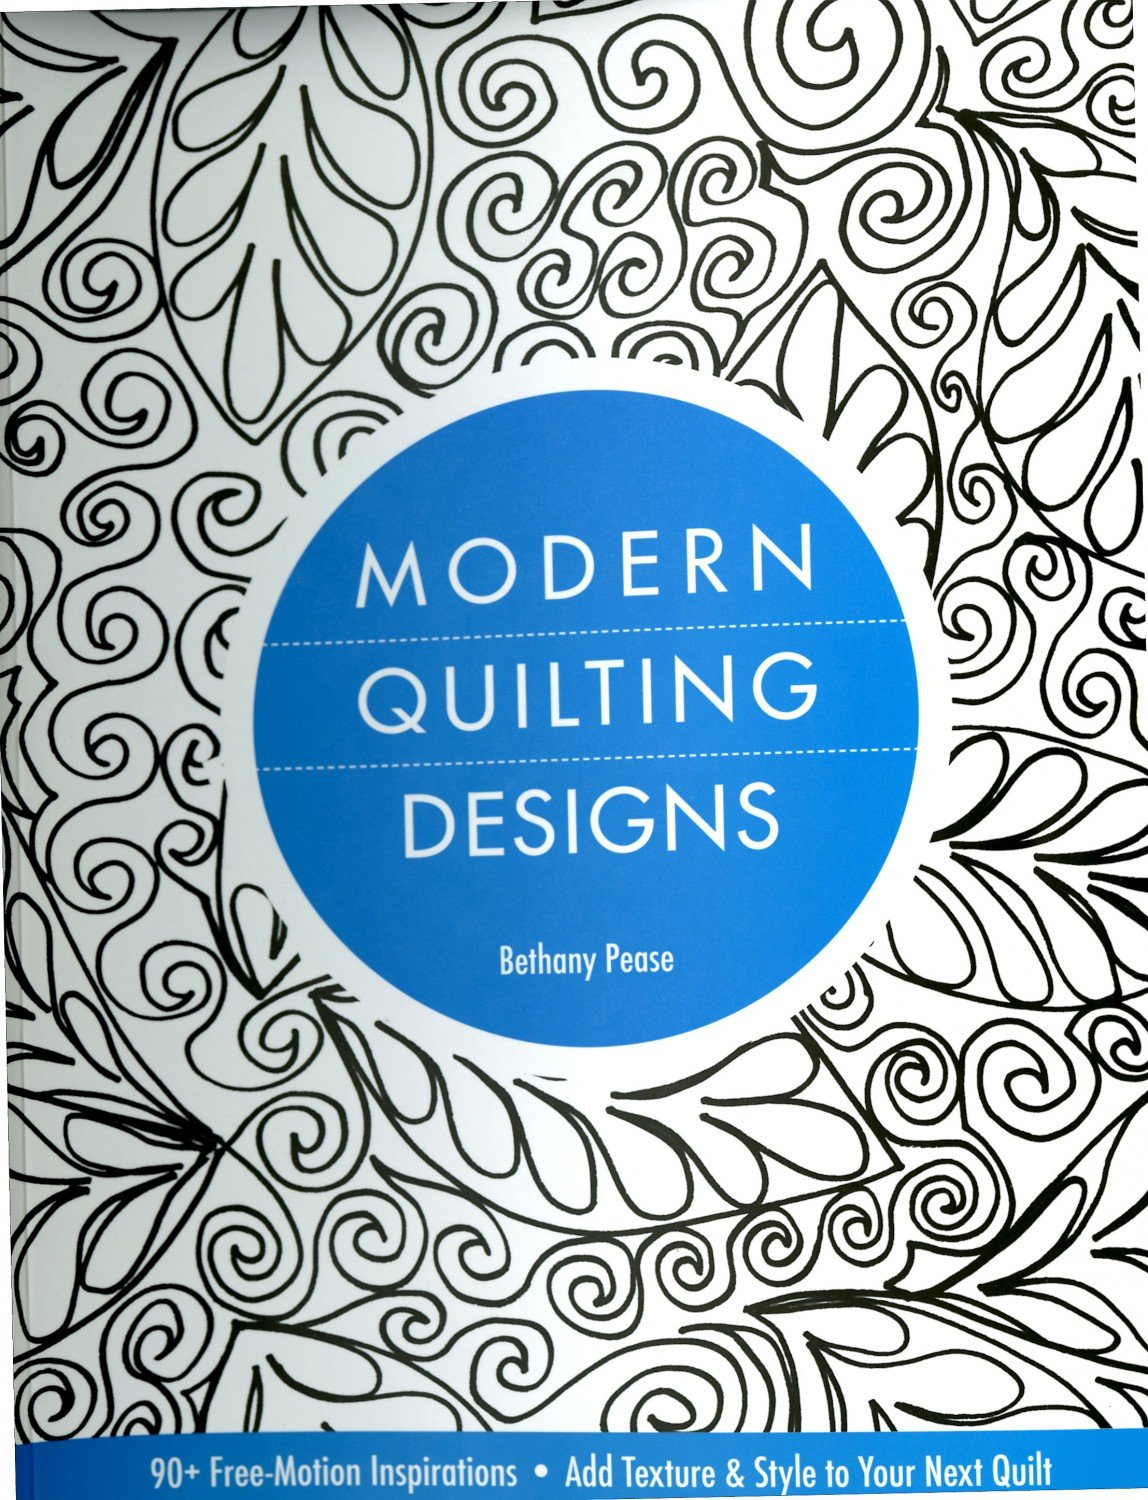 Modern Quilting Designs - 90+ Free Motion Inspirations